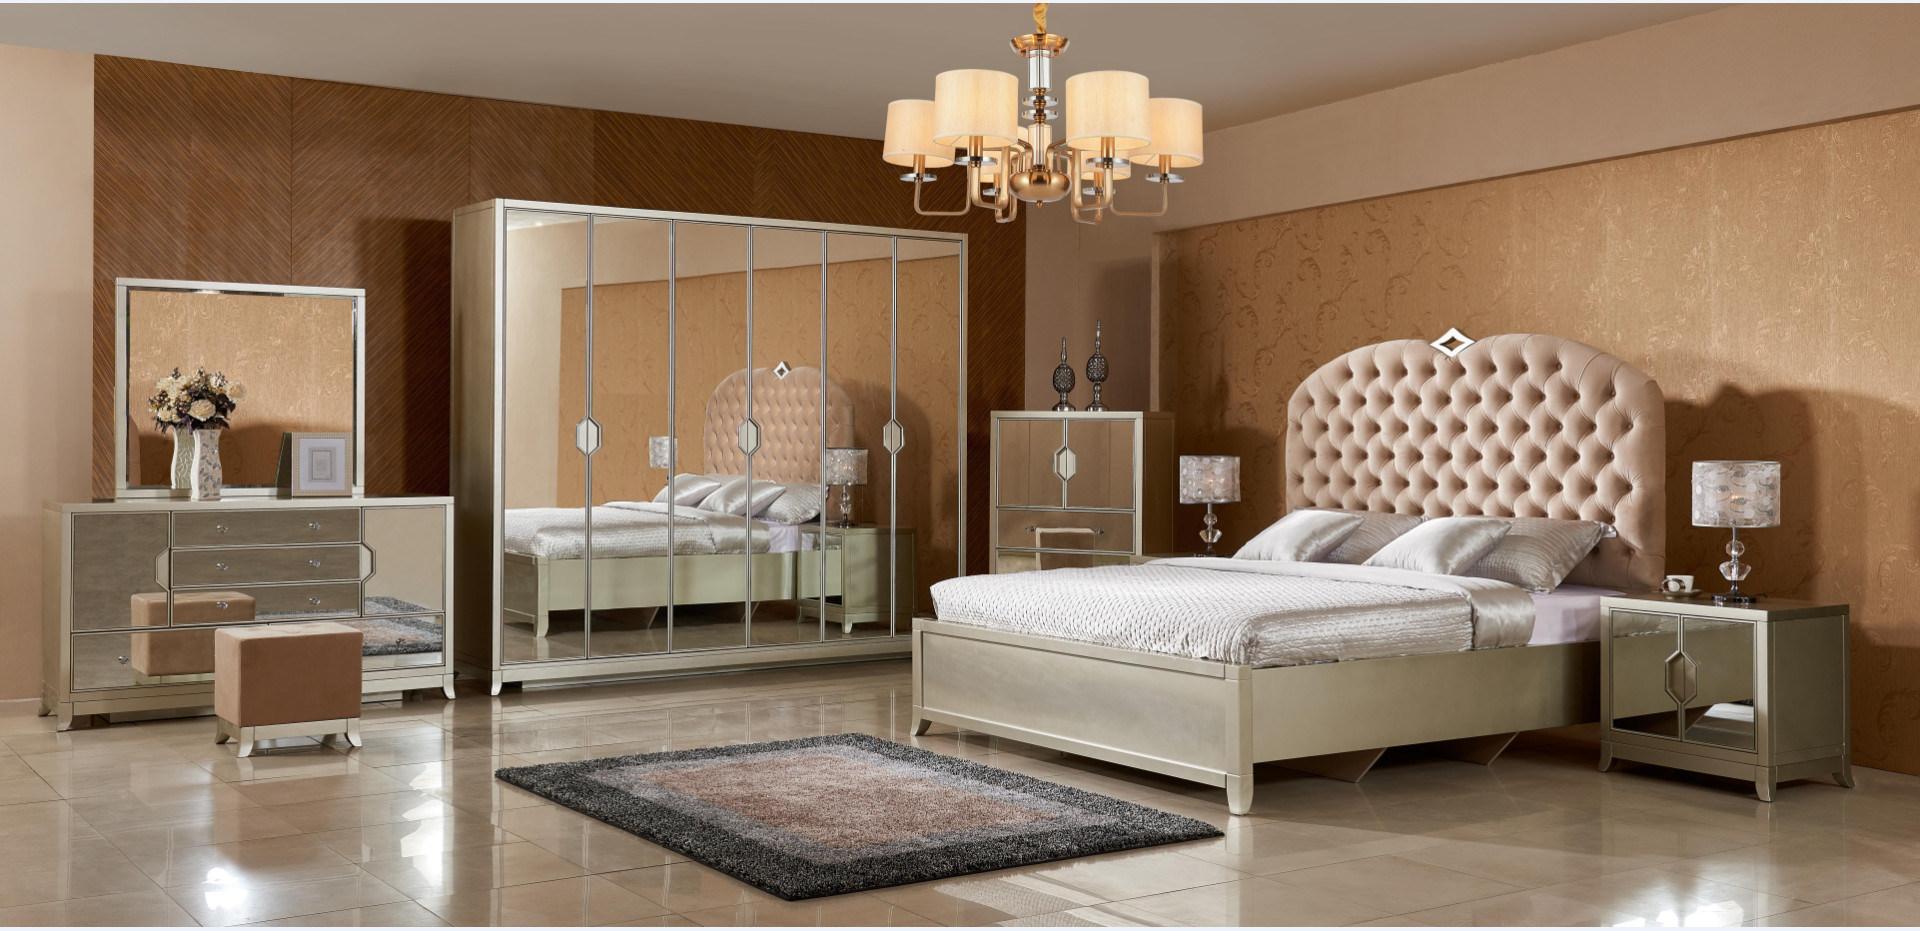 China Bed Room Decorative Mirror Bedroom Set Furniture China Bed Bedroom